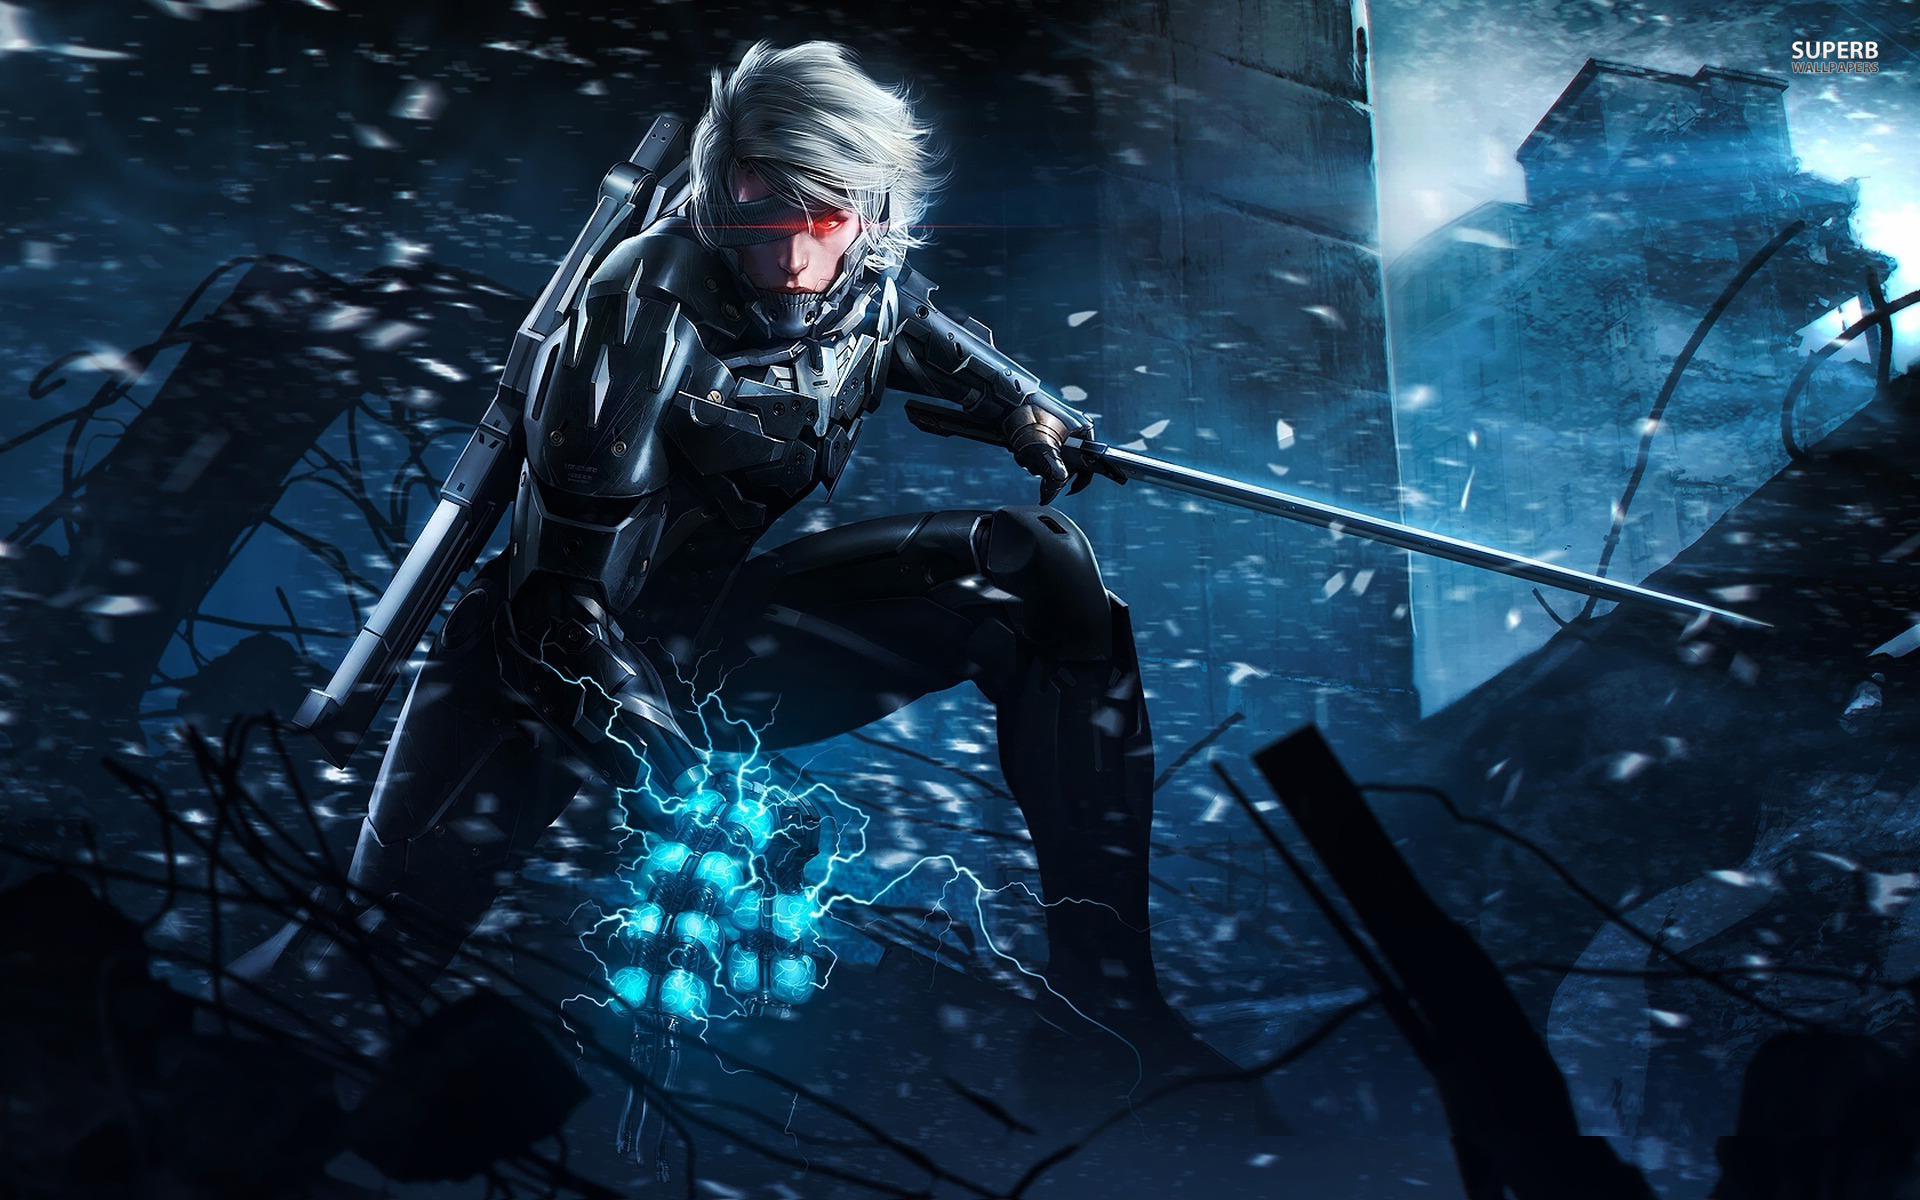 42 Hd Raiden Wallpaper On Wallpapersafari: Metal Gear Rising: Revengeance Windows, Mac, Linux, X360